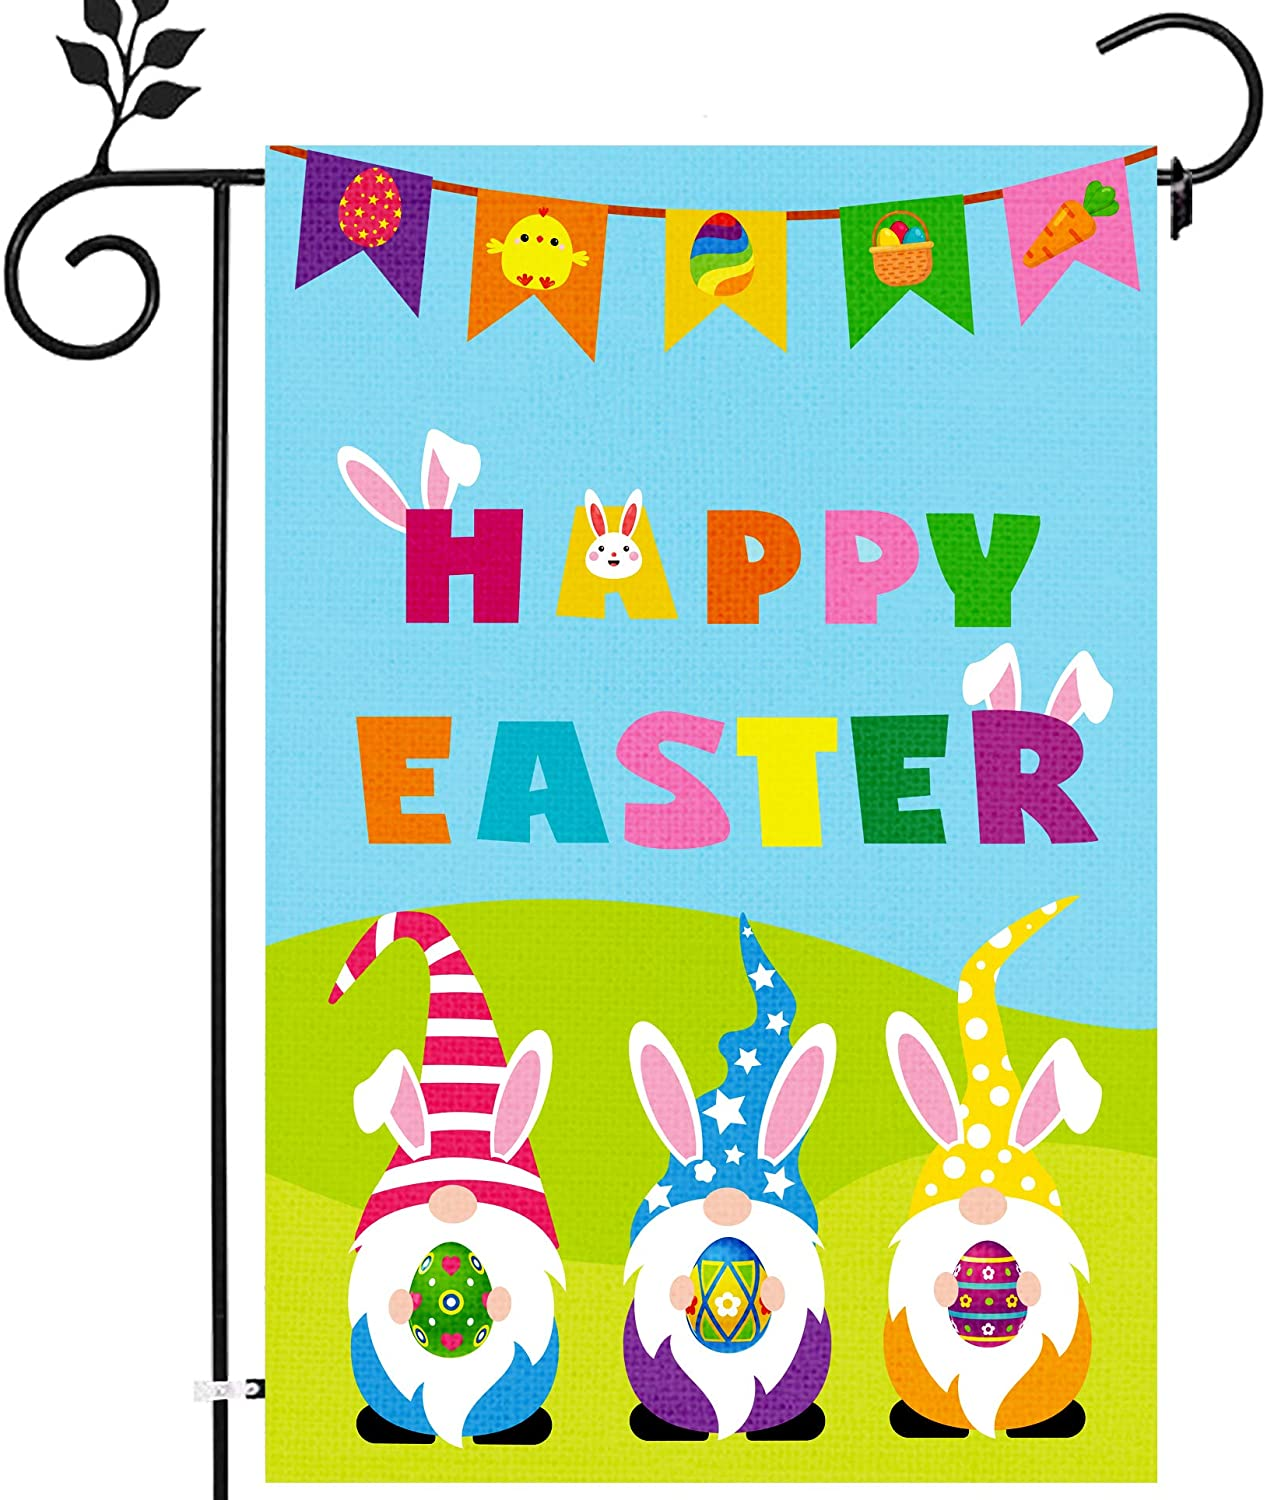 HOORAYC Easter Gnome Garden Flag Happy Easter Garden Flag 12x18 Double Sided Easter Garden Flag for Outside Yard Decorations